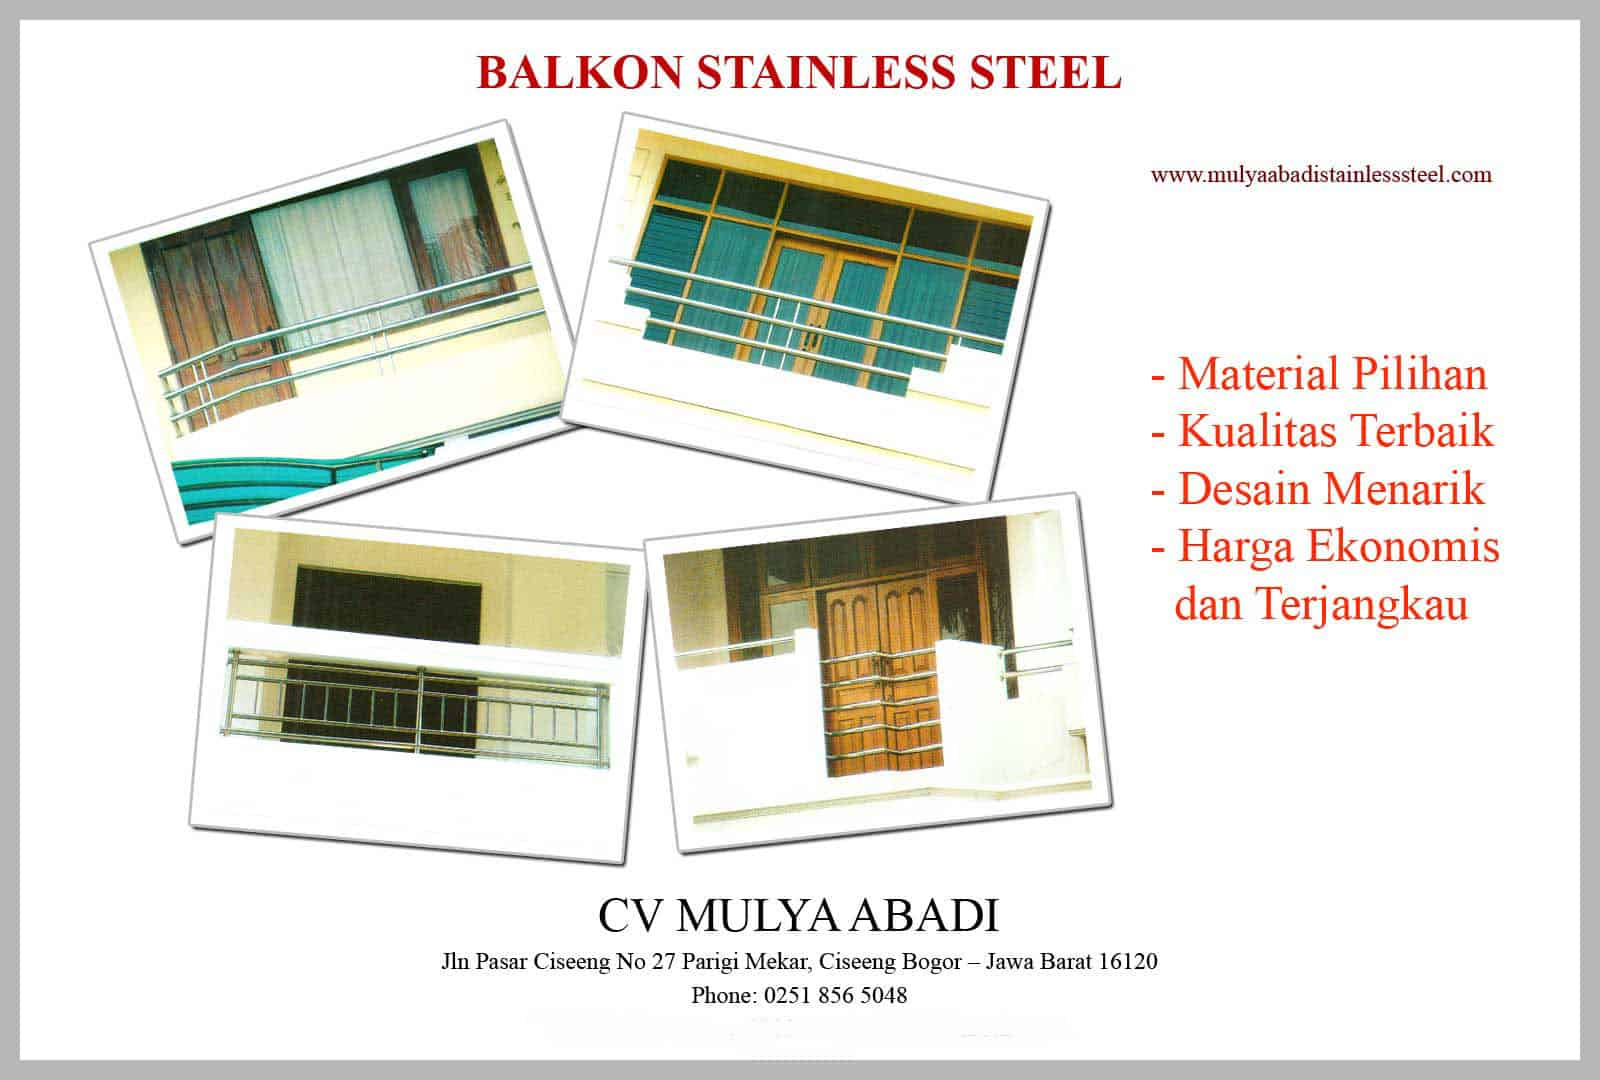 Handrail Stainless Steel Balkon Stainless Steel